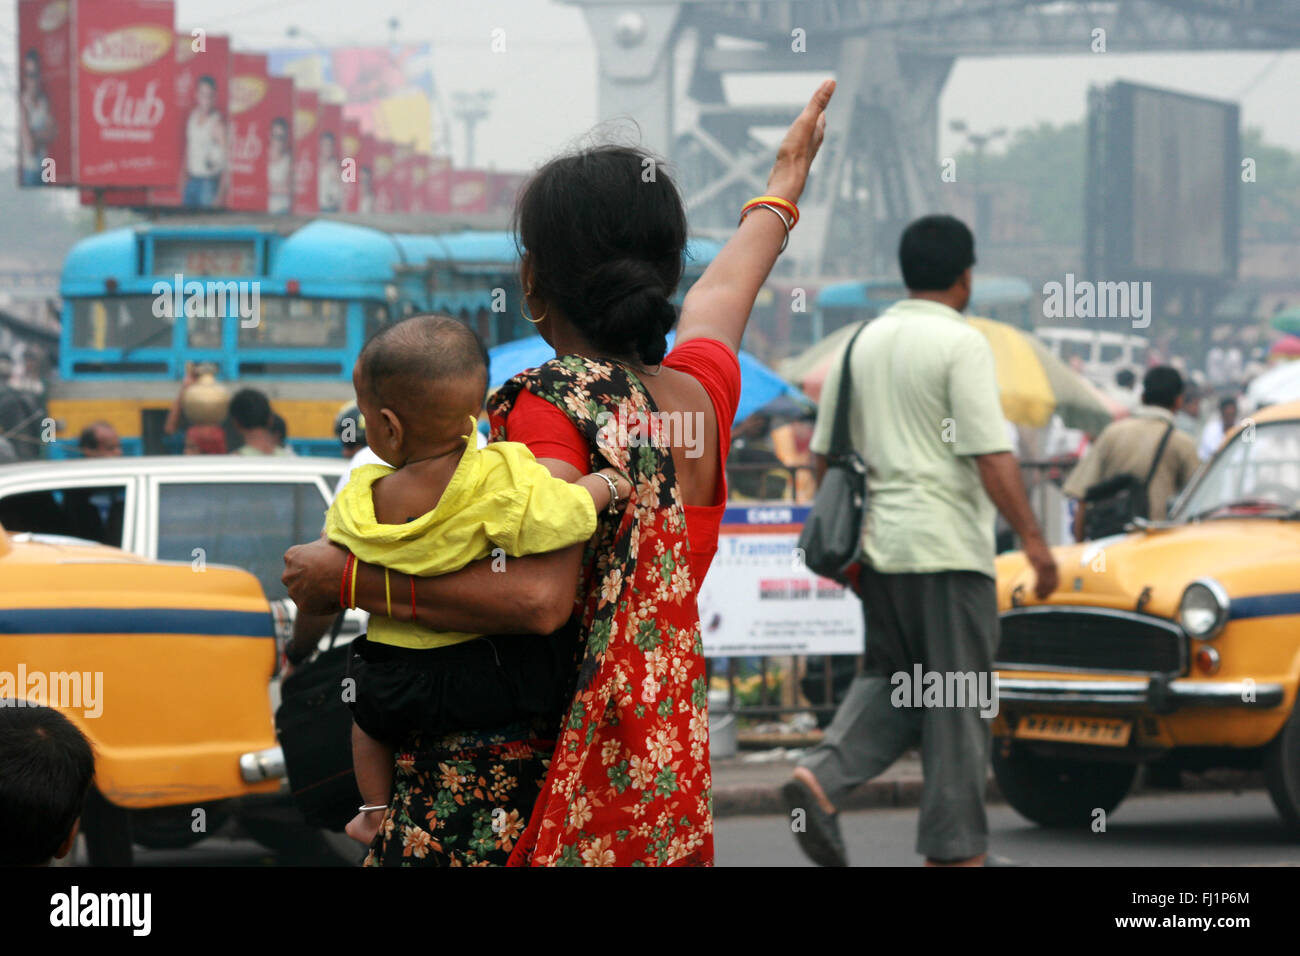 A woman carries her baby in the crowd at Howrah station in front of Howrah bridge , Kolkata , India Stock Photo